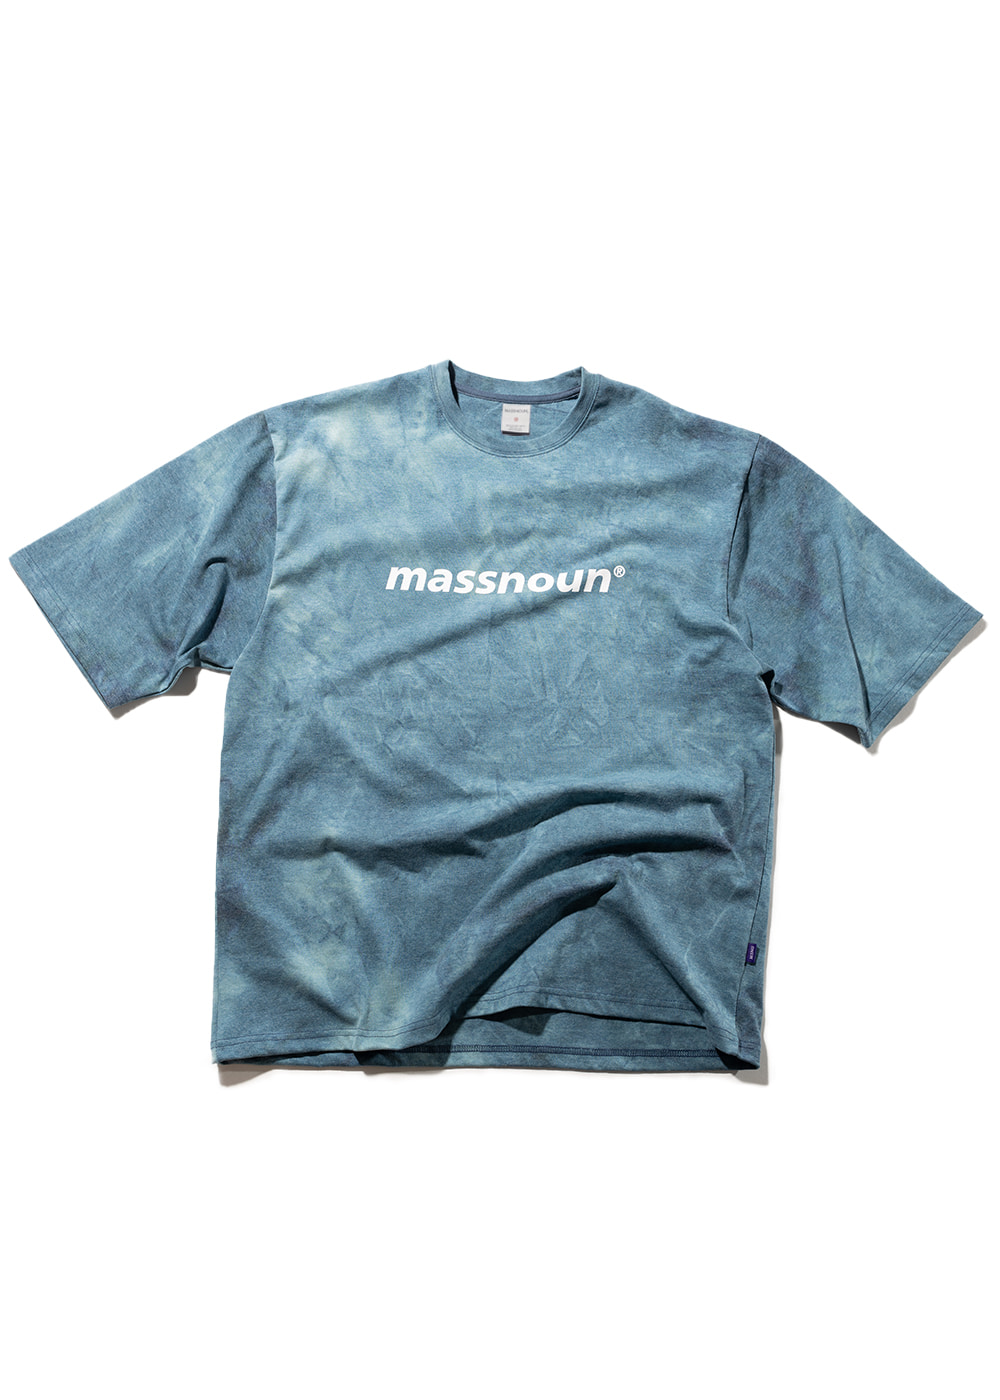 SL LOGO TIE-DYE OVERSIZED T-SHIRTS MSNTS009-MR